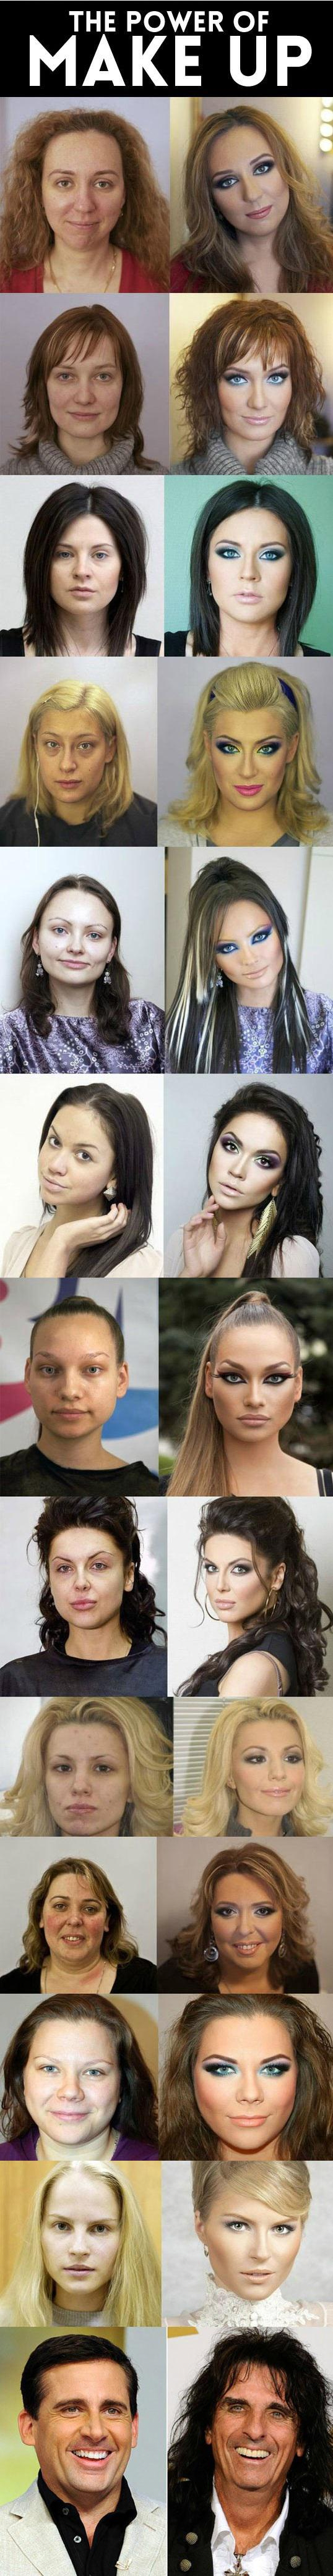 Makeup Can Do Wonders... -   Misc